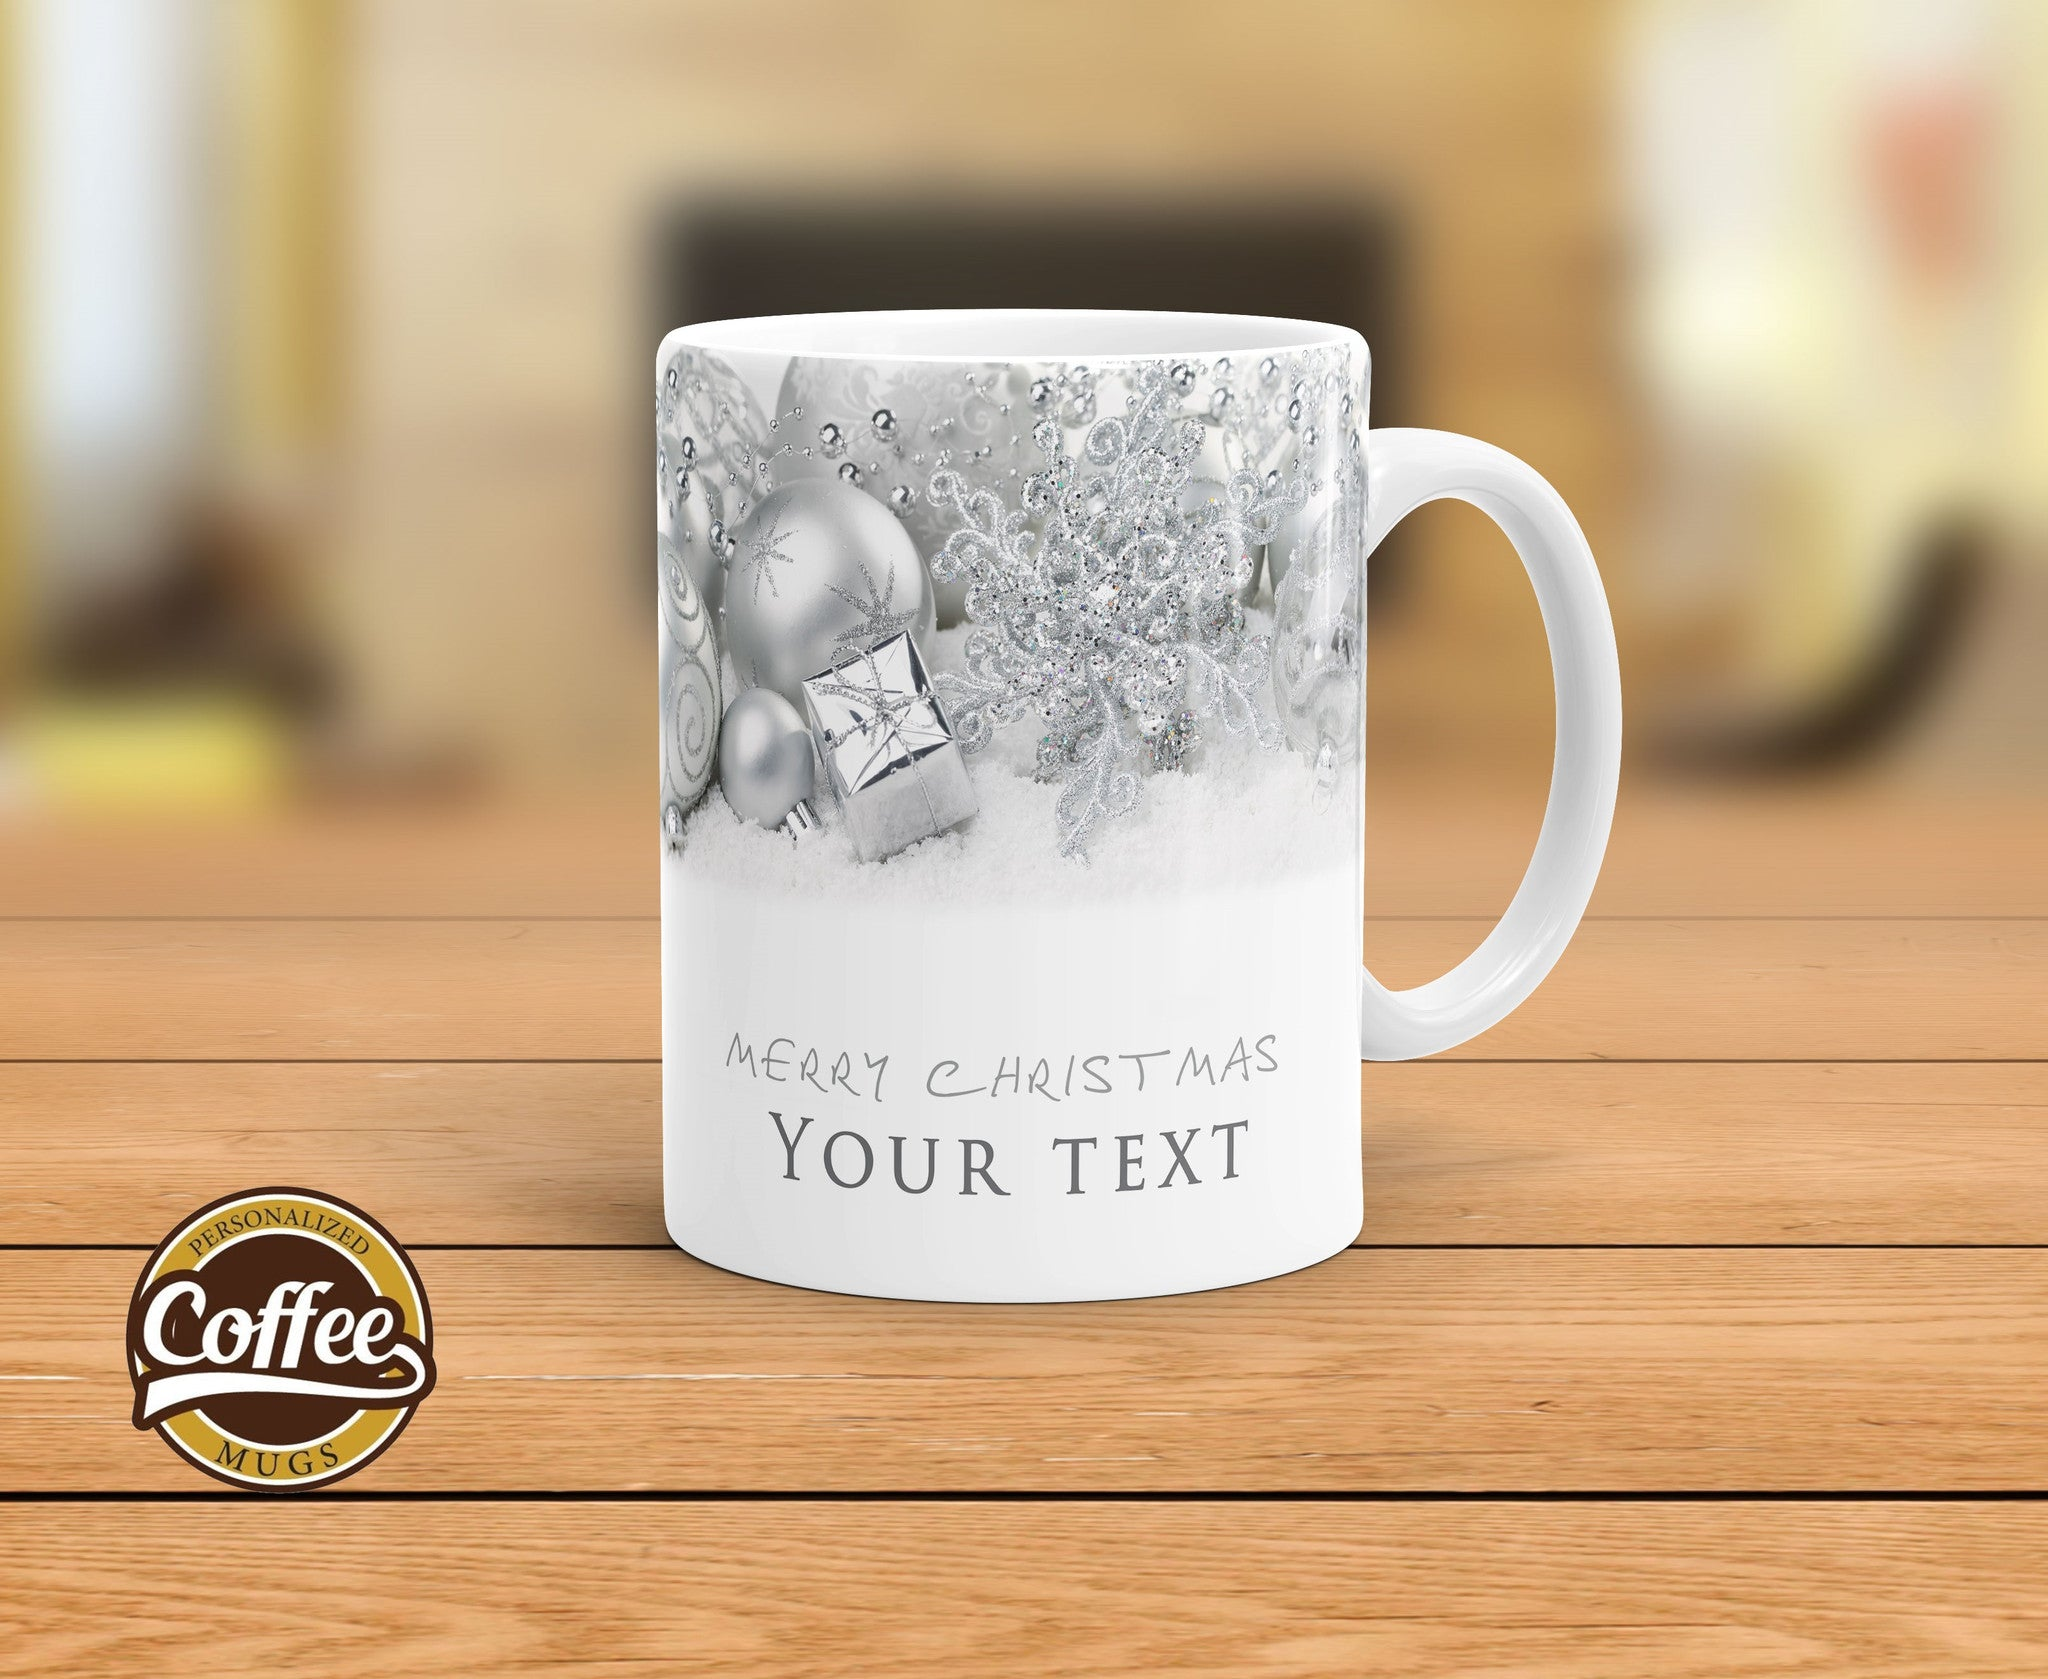 personalized coffee Mugs, custom mugs, custom coffee mugs